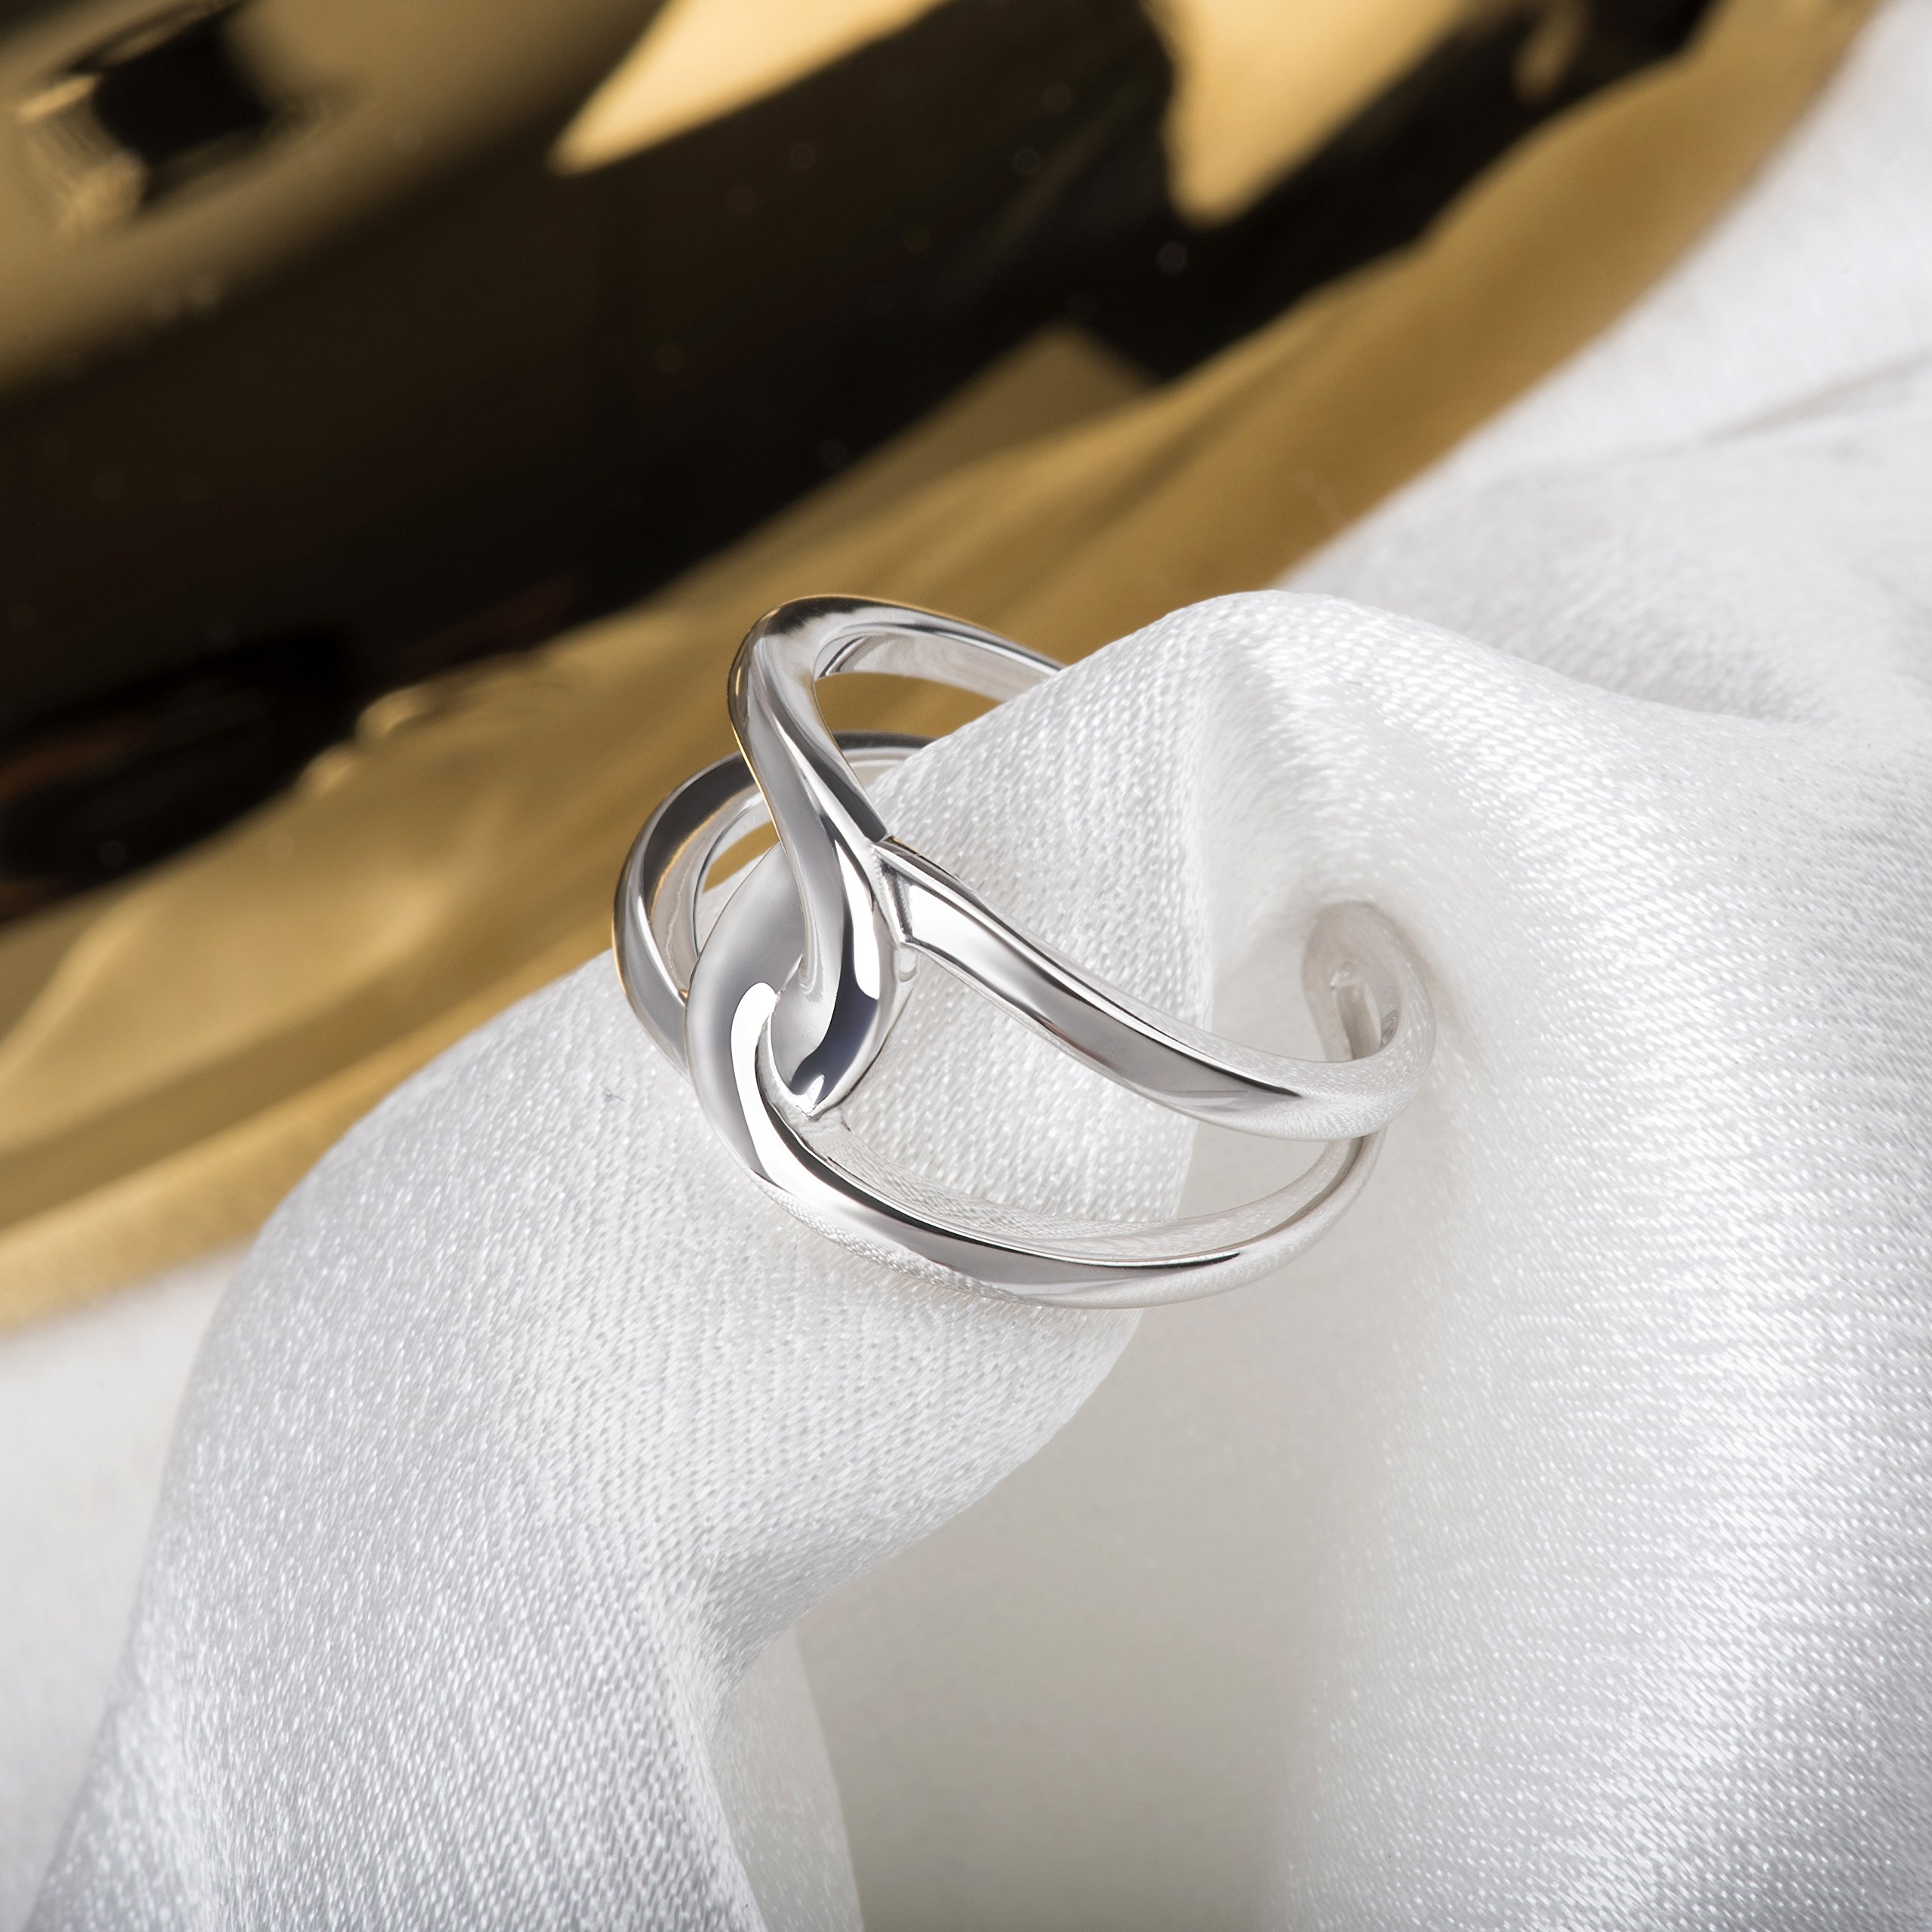 Fonsalette Gold Plated Infinity Ring Sterling Silver Open Twist Ring Two Band Ring (silver) by Fonsalette (Image #4)